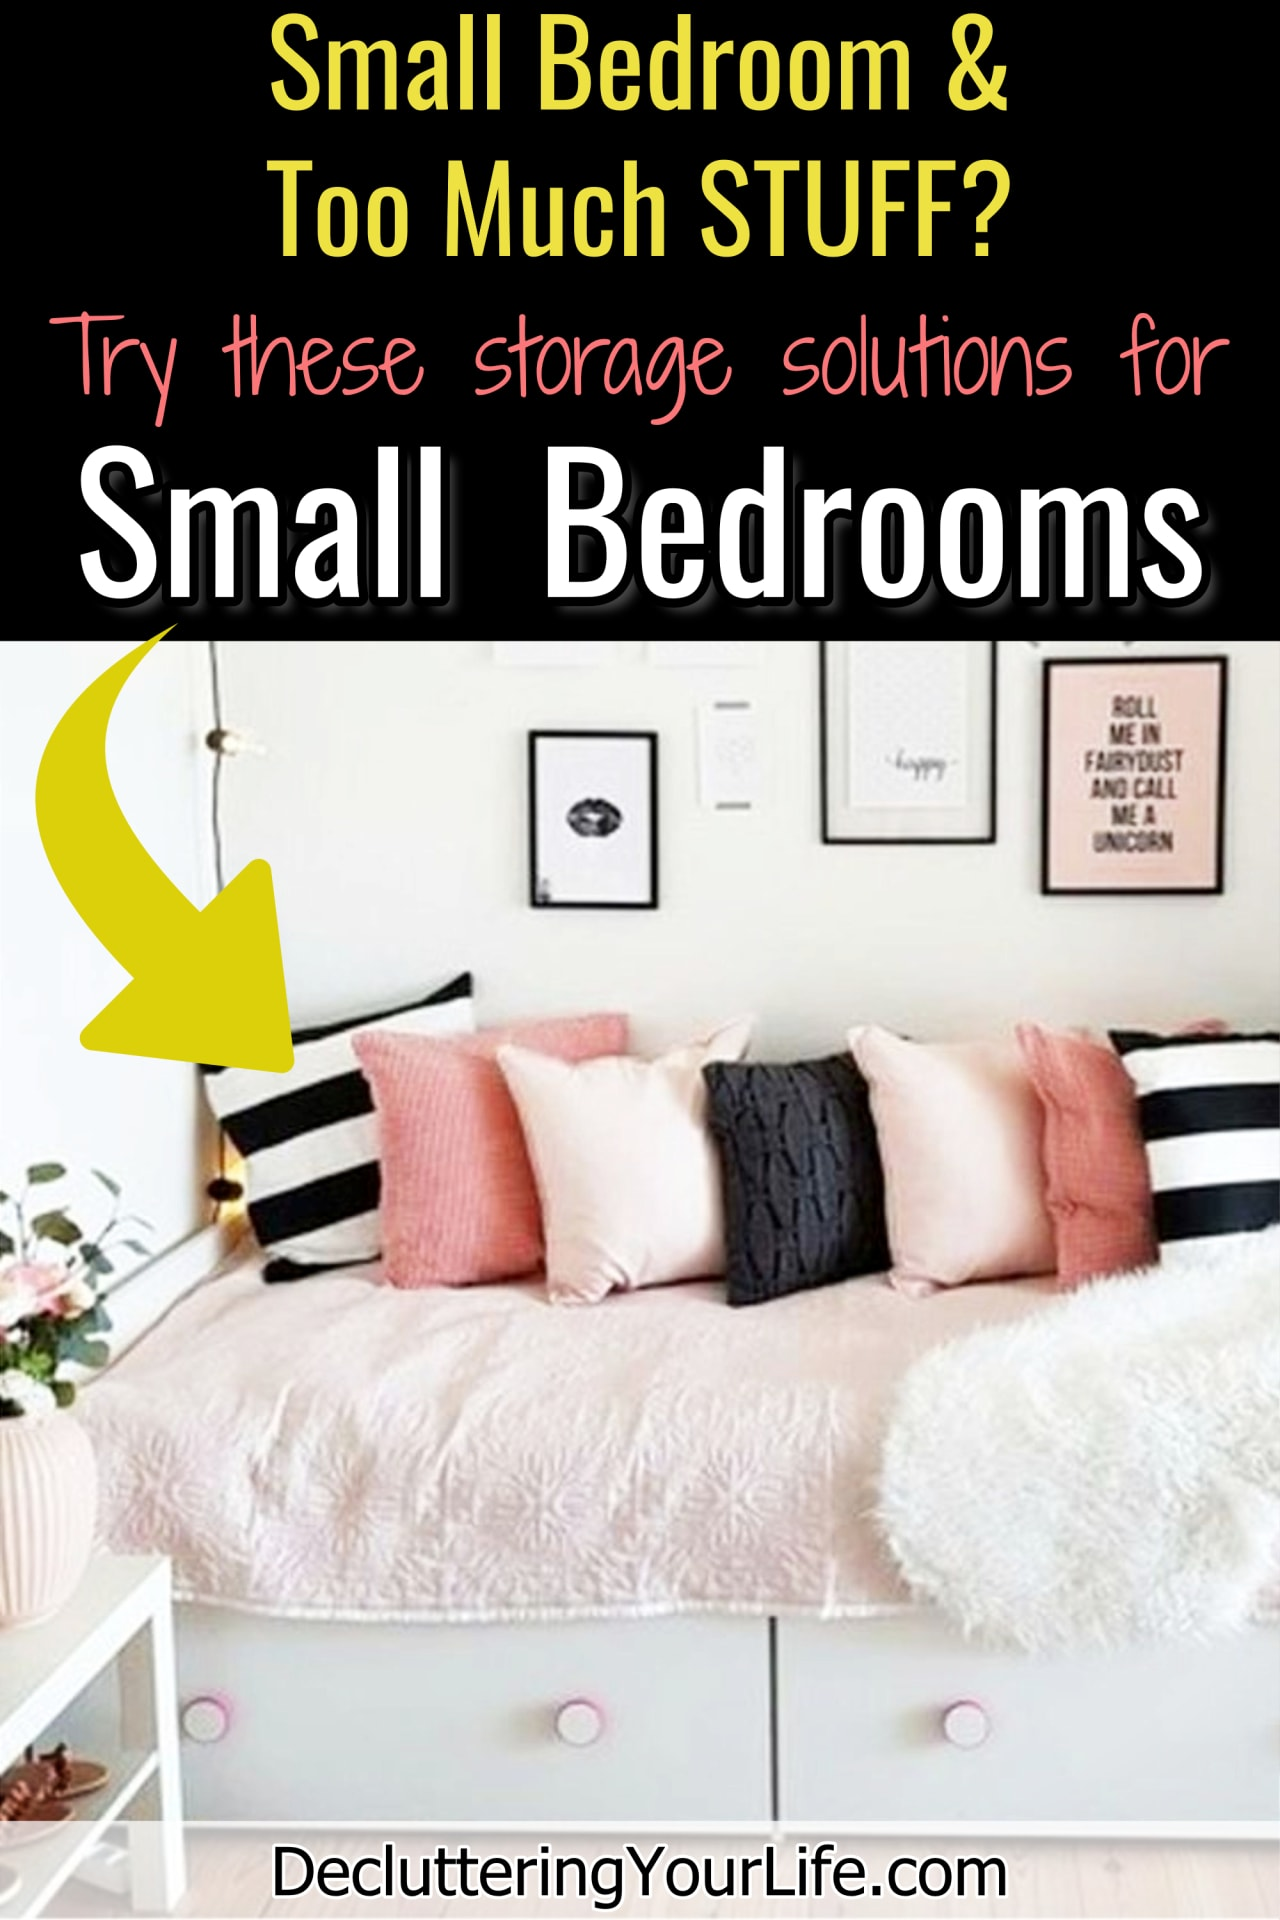 DIY small bedroom storage ideas - Staying organized in small spaces (like a small bedroom or small college dorm room) is hard when you have too much STUFF.How to declutter all the random junk in your bedroom with creative organizing tips and home storage and organization ideas for small bedrooms.  Easy ways to declutter your clutter from cluttered mess to organized success